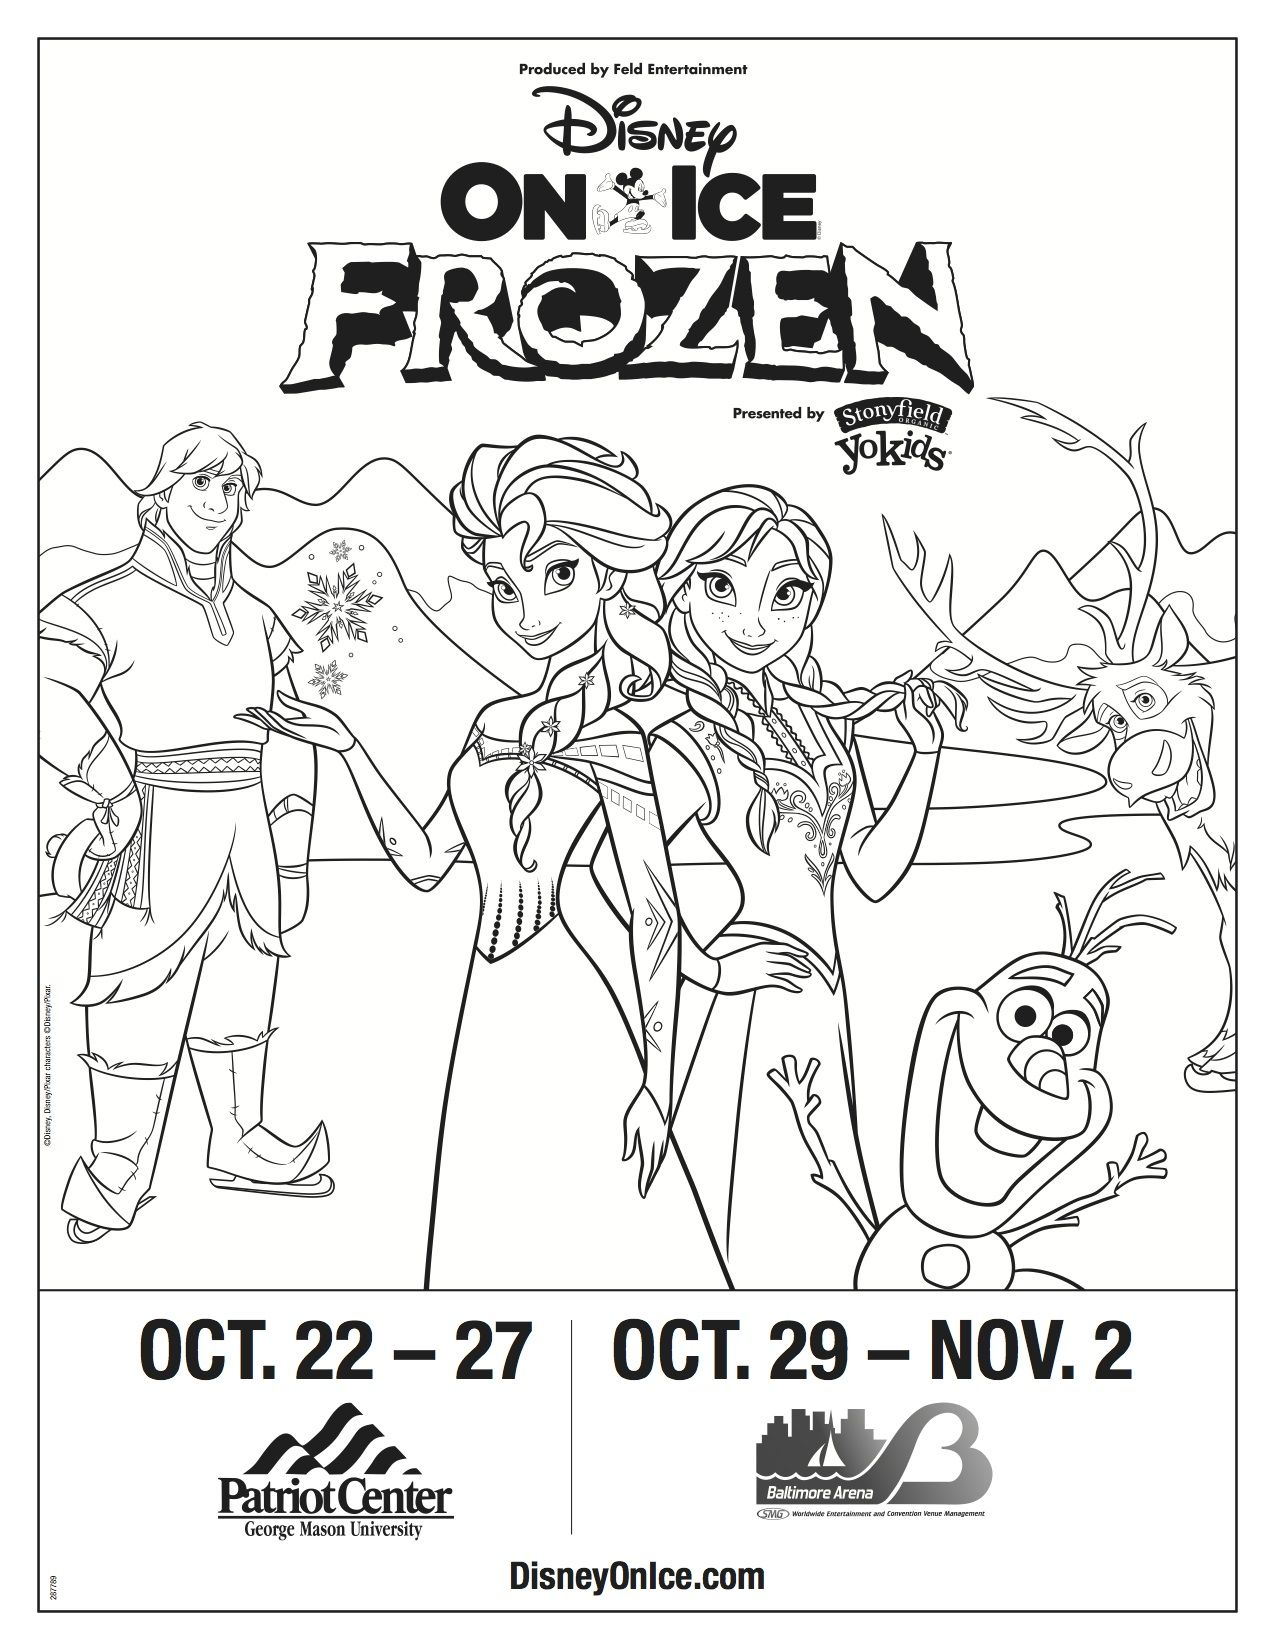 Disney On Ice Presents Frozen Enter To Win A Family 4 Pack Of Tickets Disney On Ice Coloring Pages Frozen Coloring